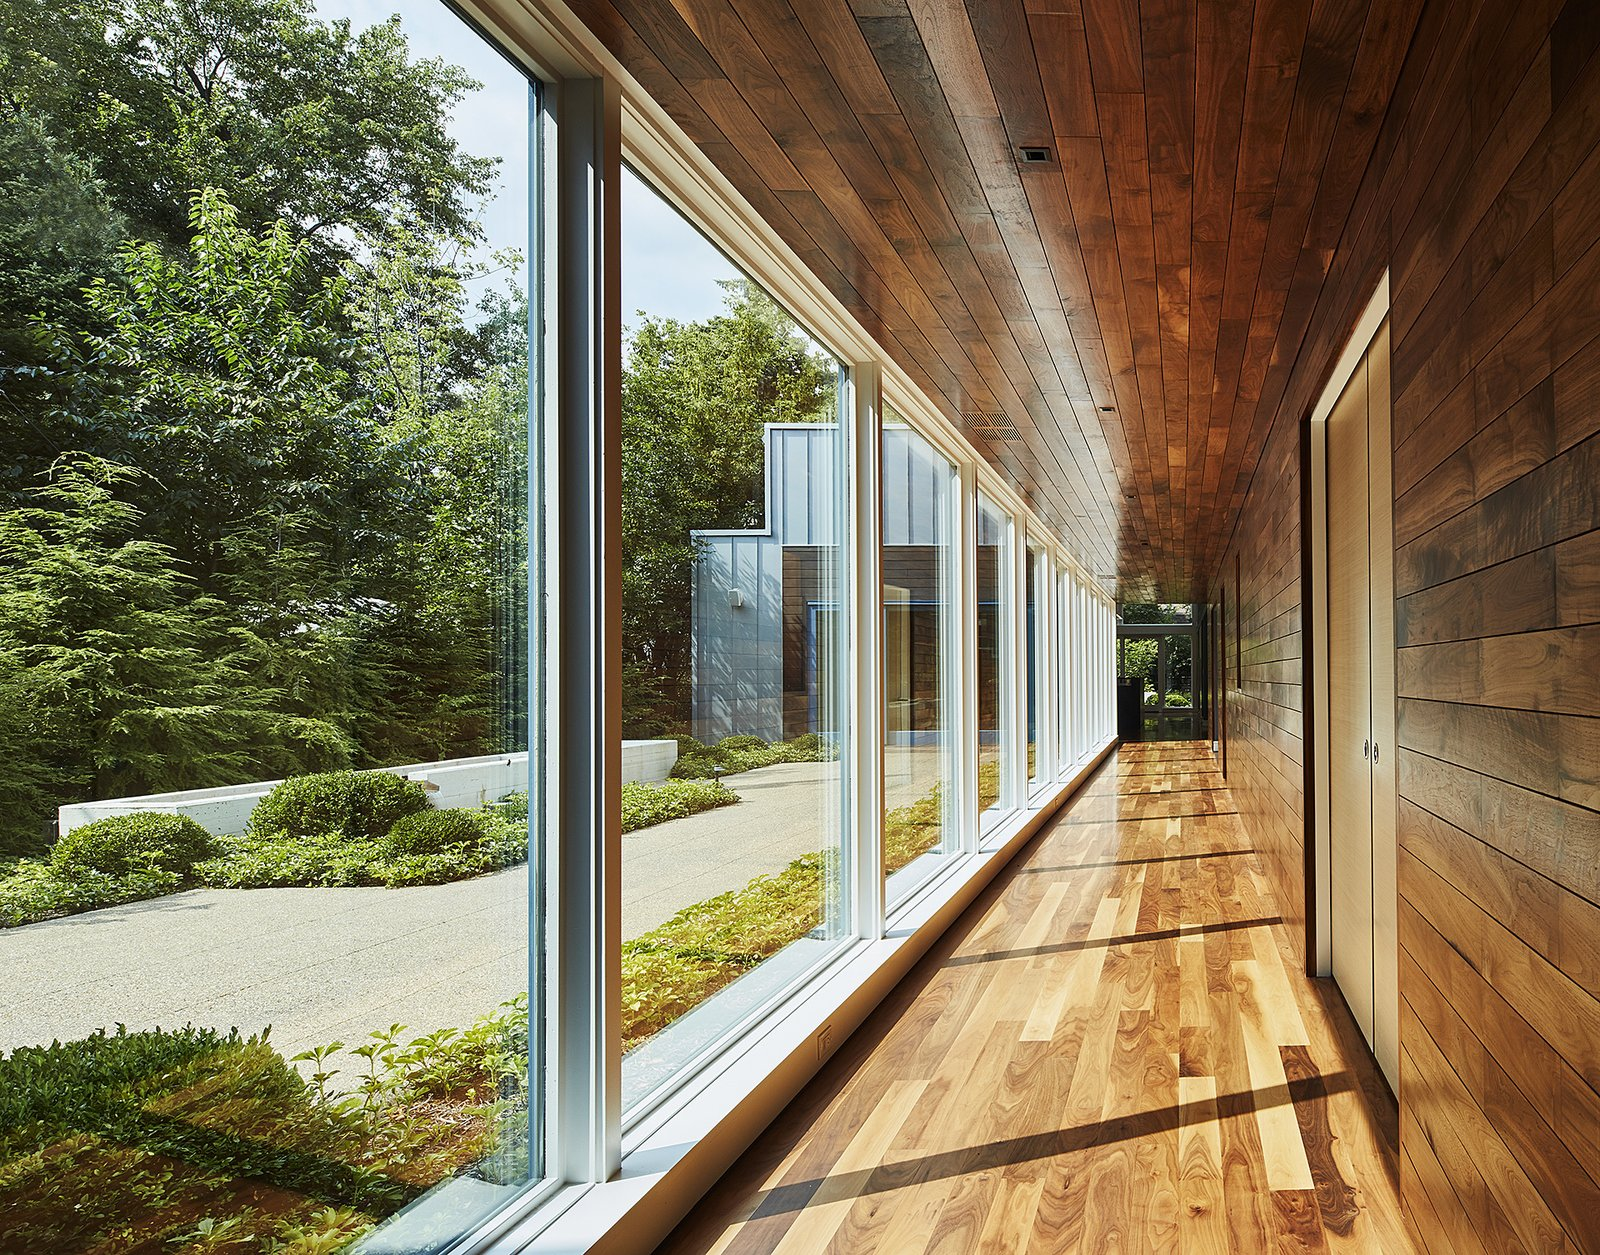 Hallway and Medium Hardwood Floor hallway looking south  Courtyard Residence by Kuklinski + Rappe Architects